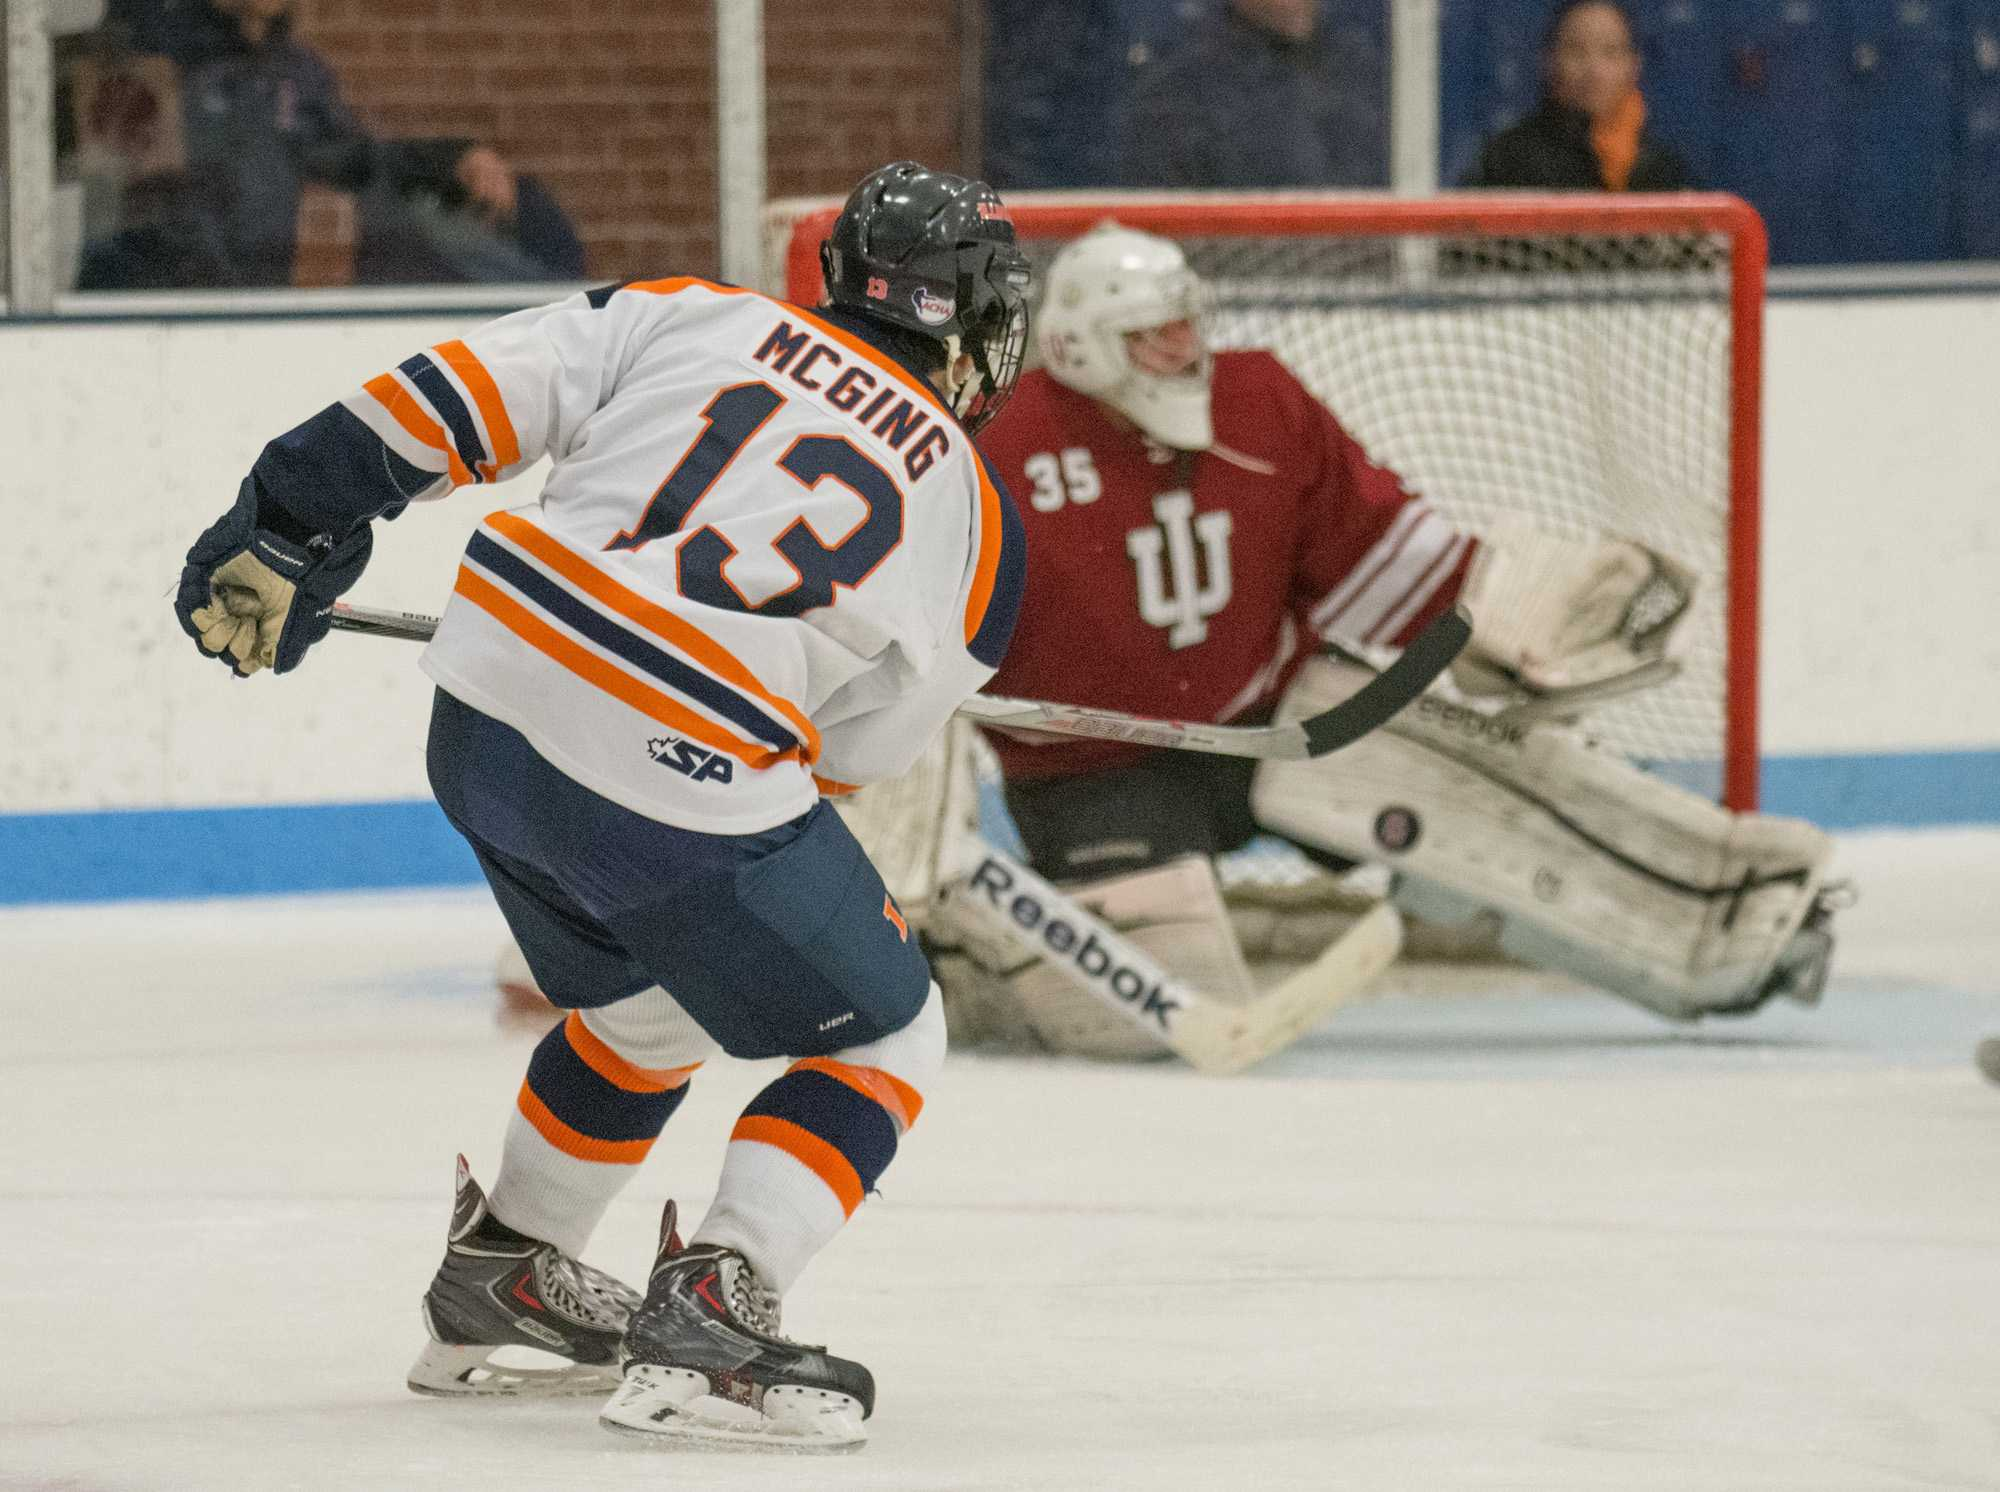 James Mcging puts a shot on goal during the game against Indiana at the Ice Arena on Saturday, Nov. 6. Illinois won 5-2.